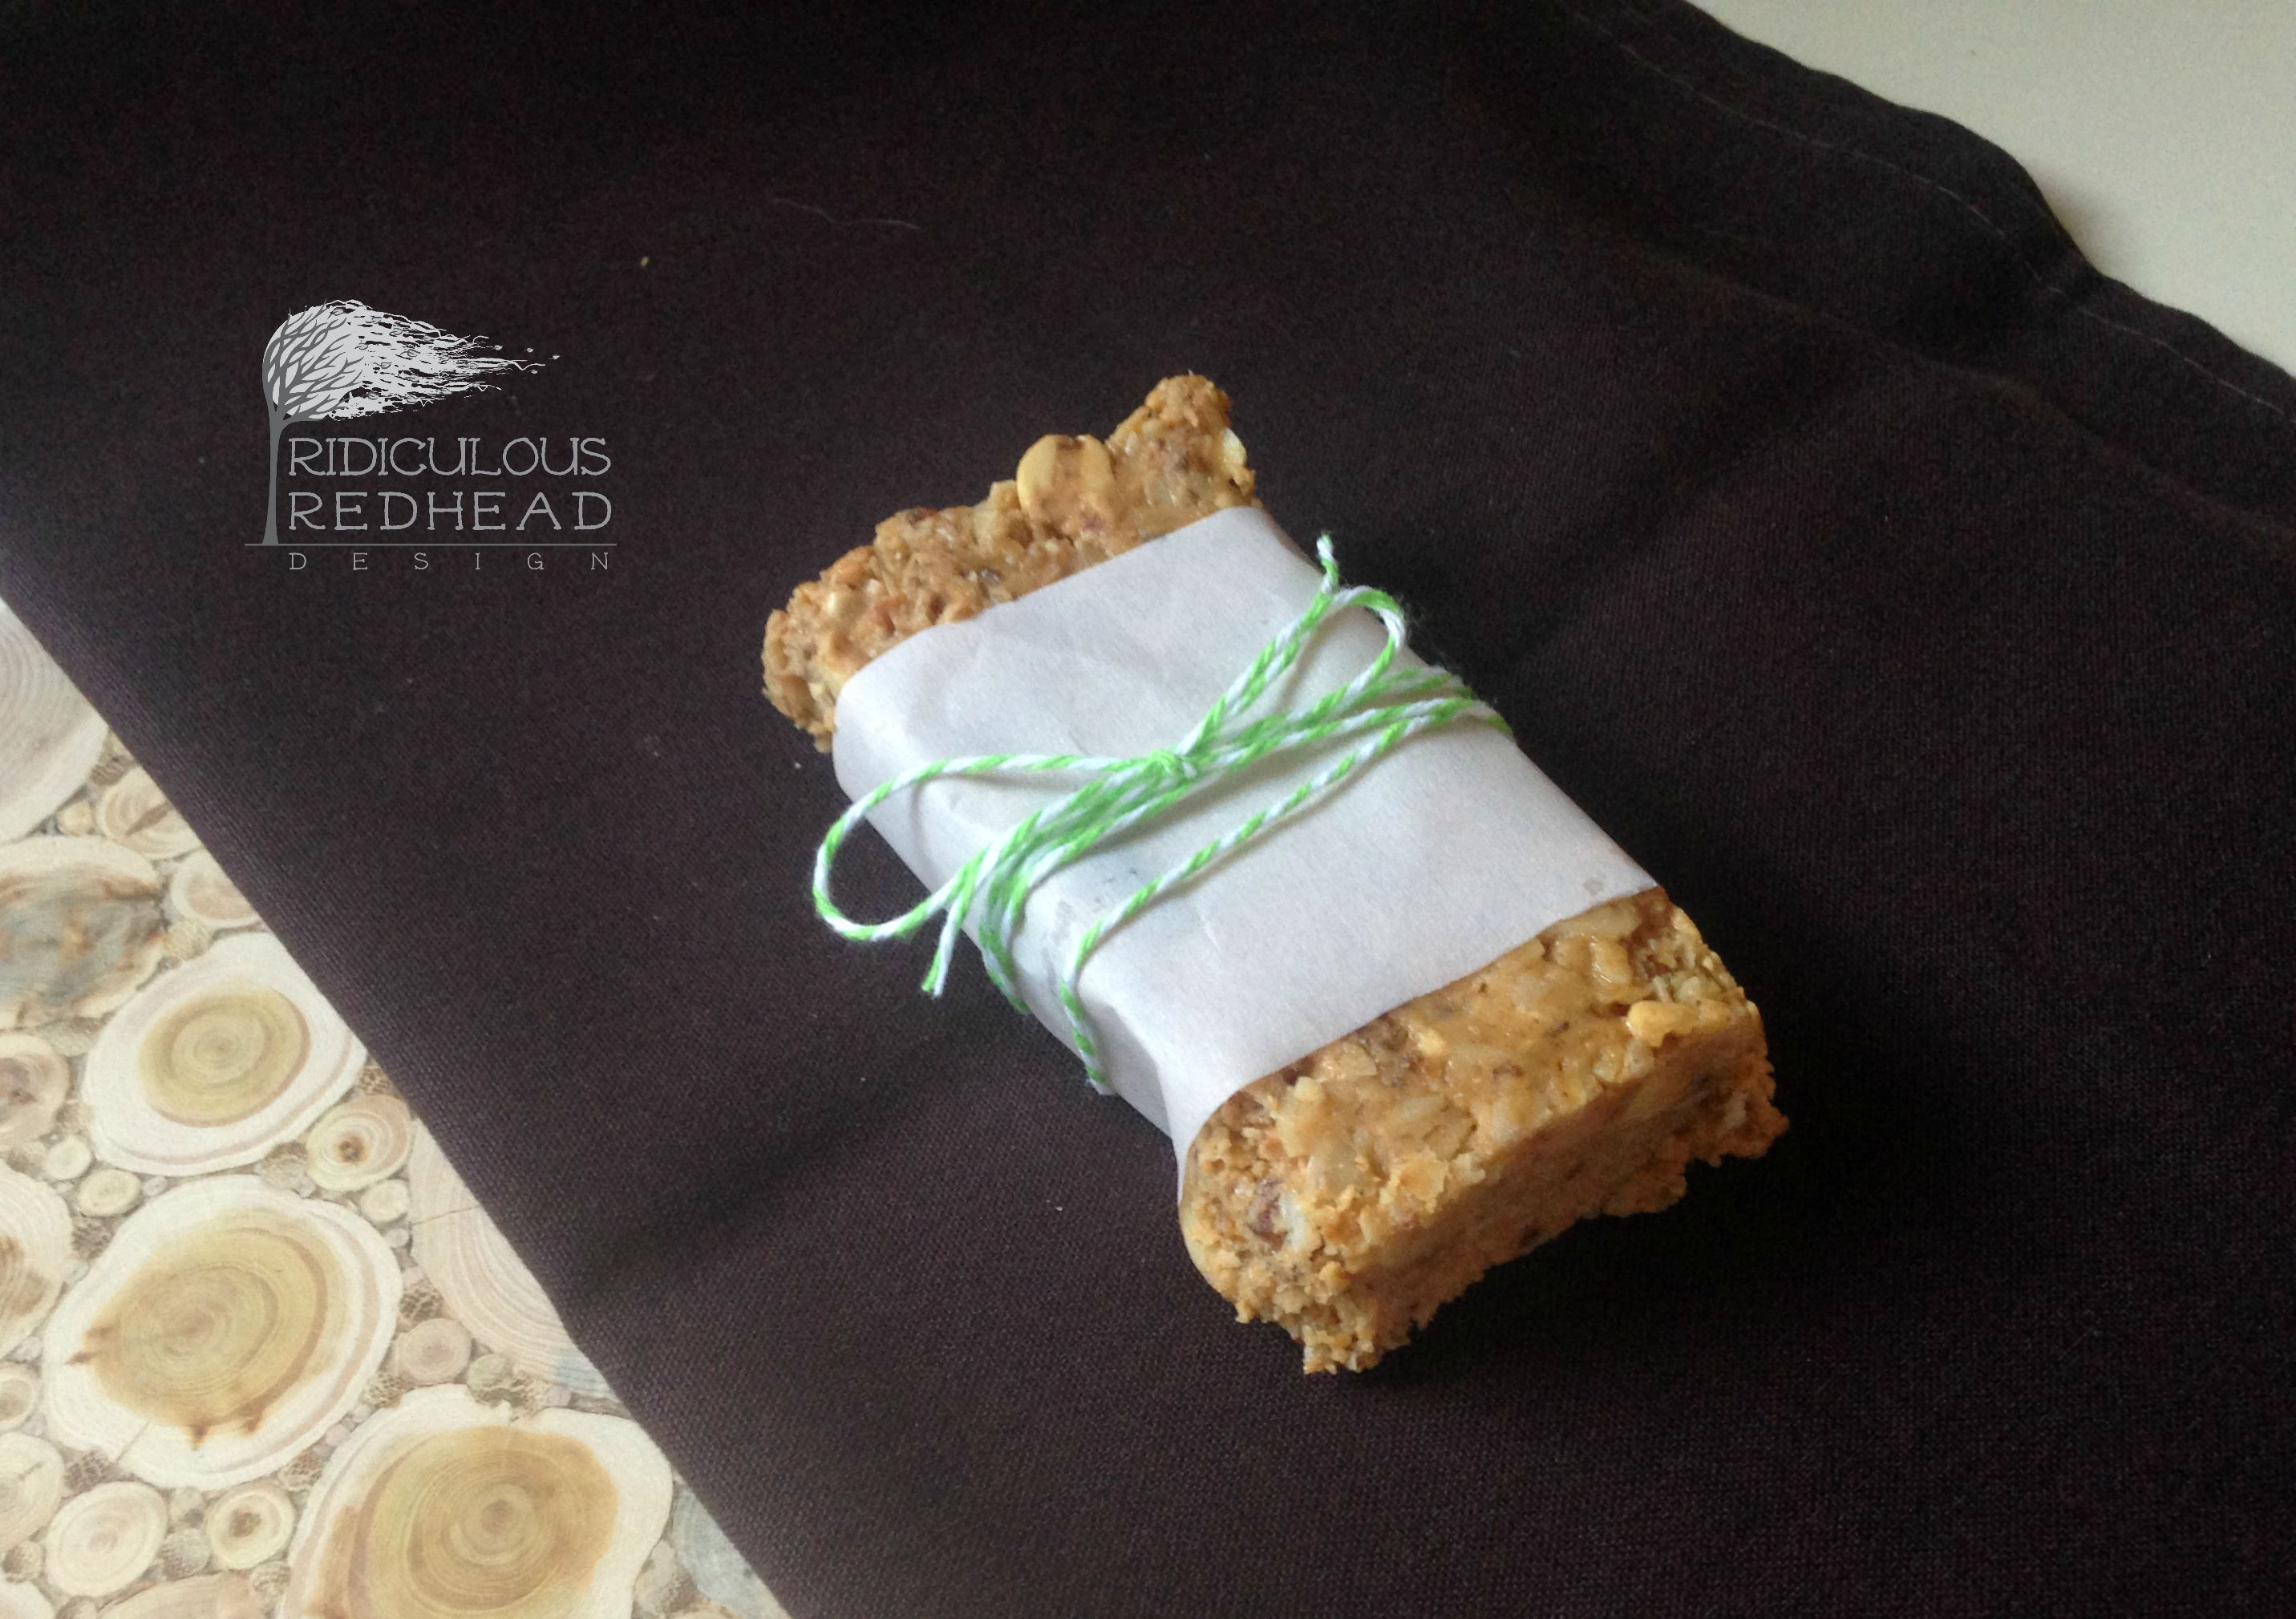 Ridiculous Redhead DIY Clif bars wrap